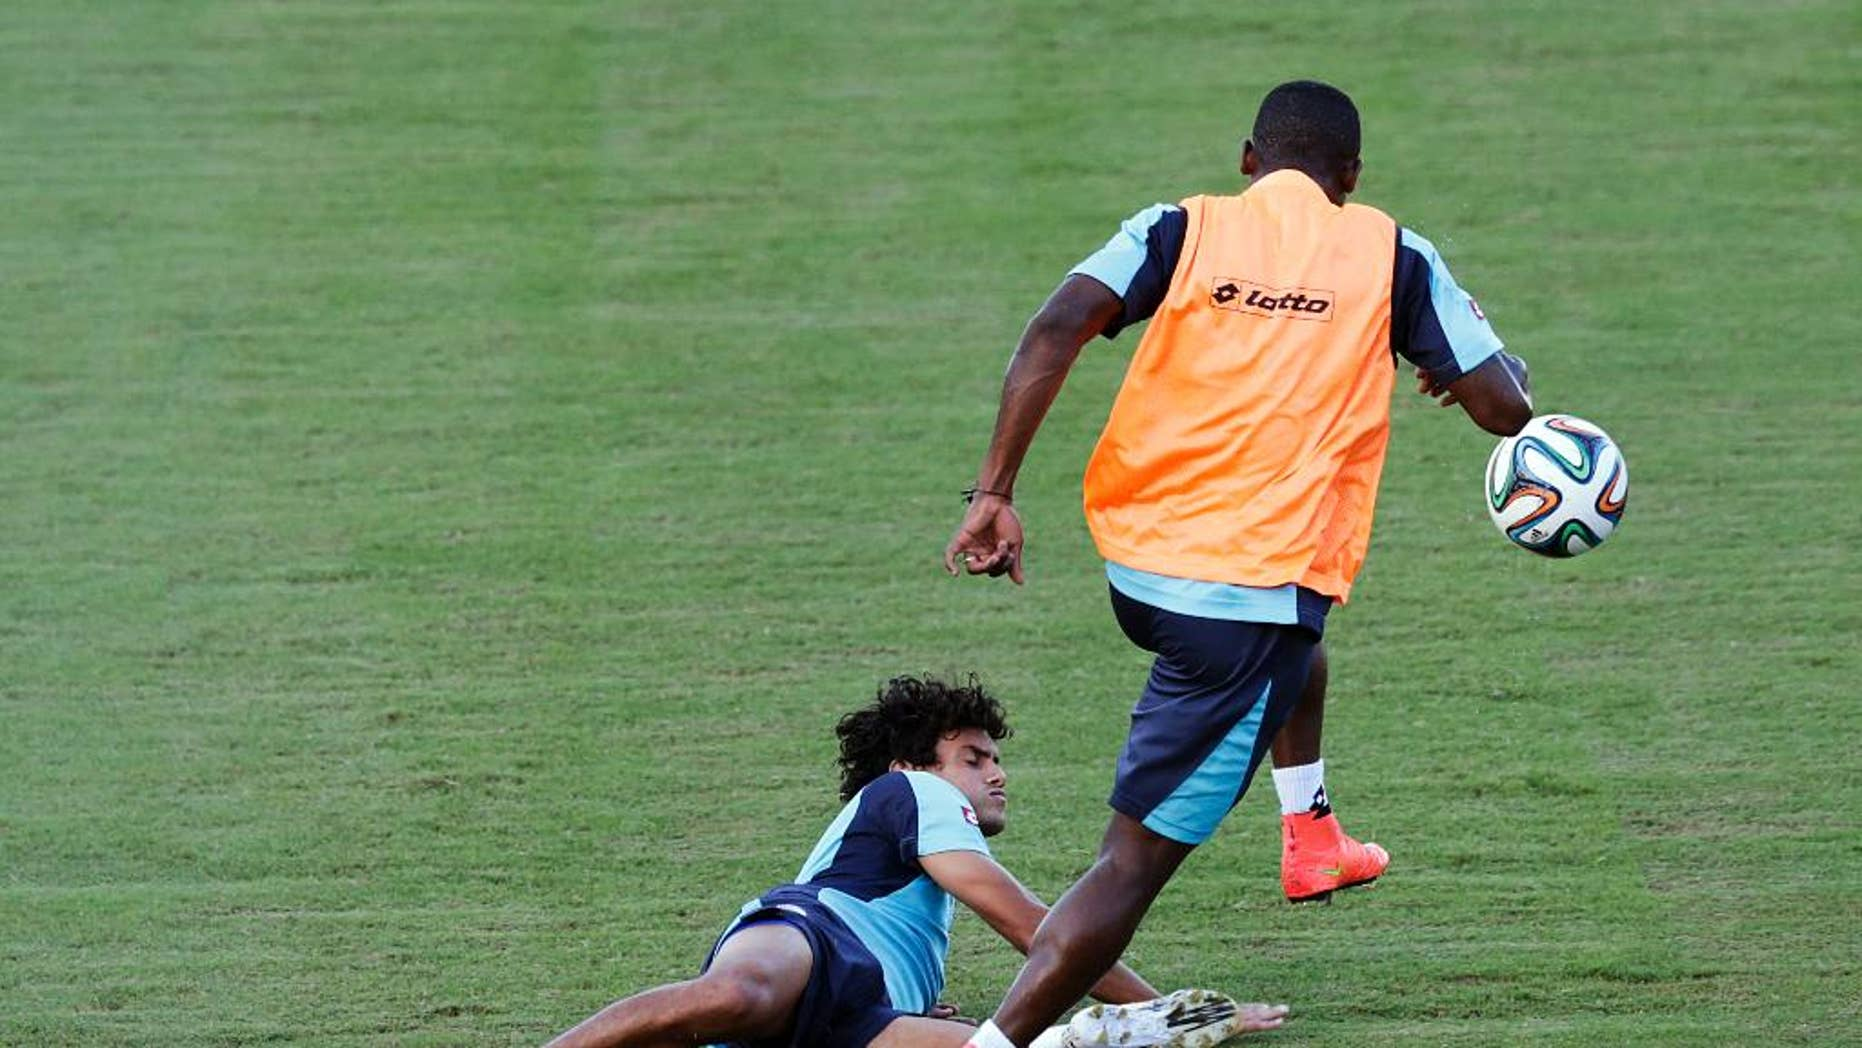 Costa Rica's Yeltsin Tejeda falls as he is tackled during a training session in Salvador, Brazil, Friday, July 4, 2014. Costa Rica play their quarterfinal match of the 2014 World Cup soccer tournament against Netherlands on July 5 in Salvador(AP Photo/Wong Maye-E)